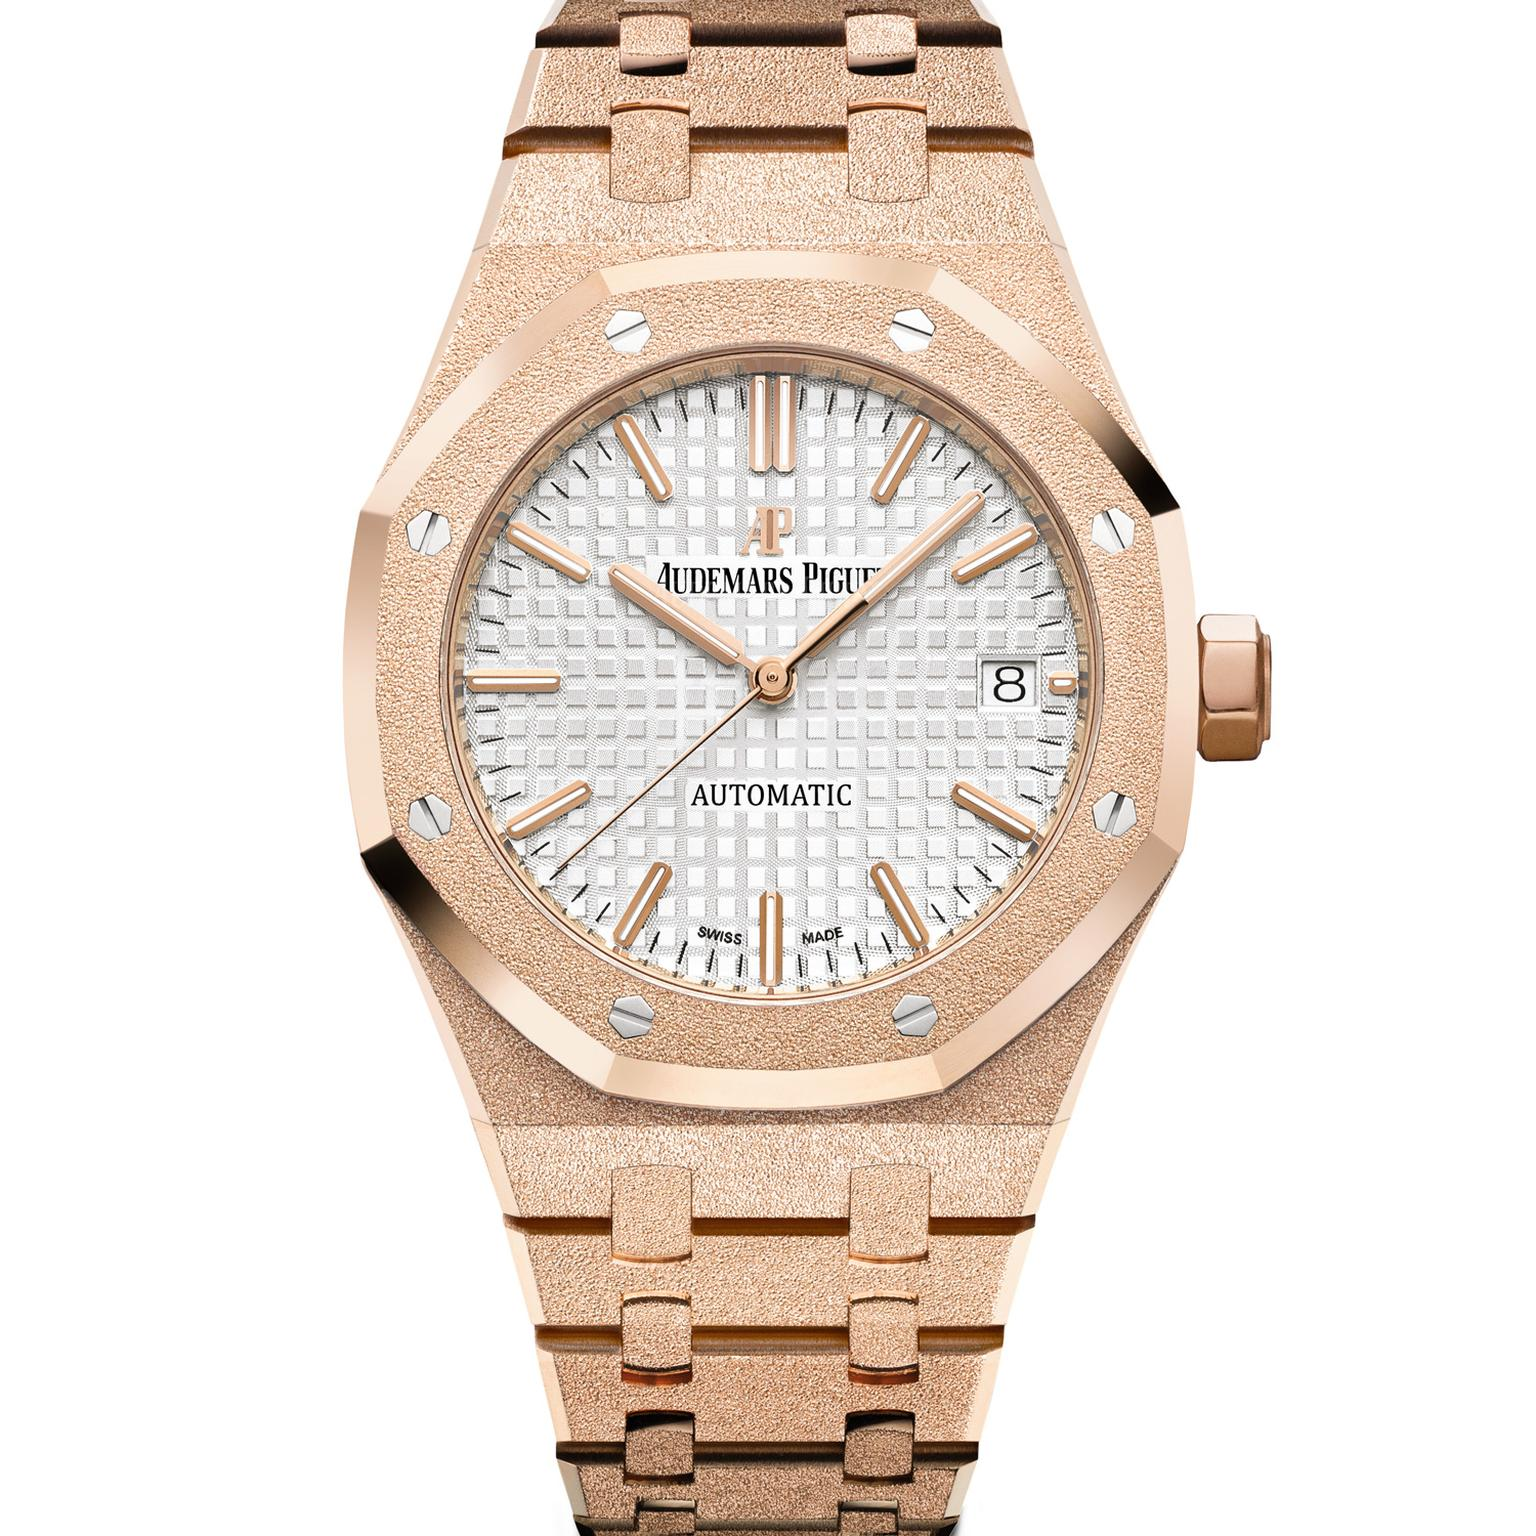 Audemars Piguet Royal Oak Frosted Gold watch